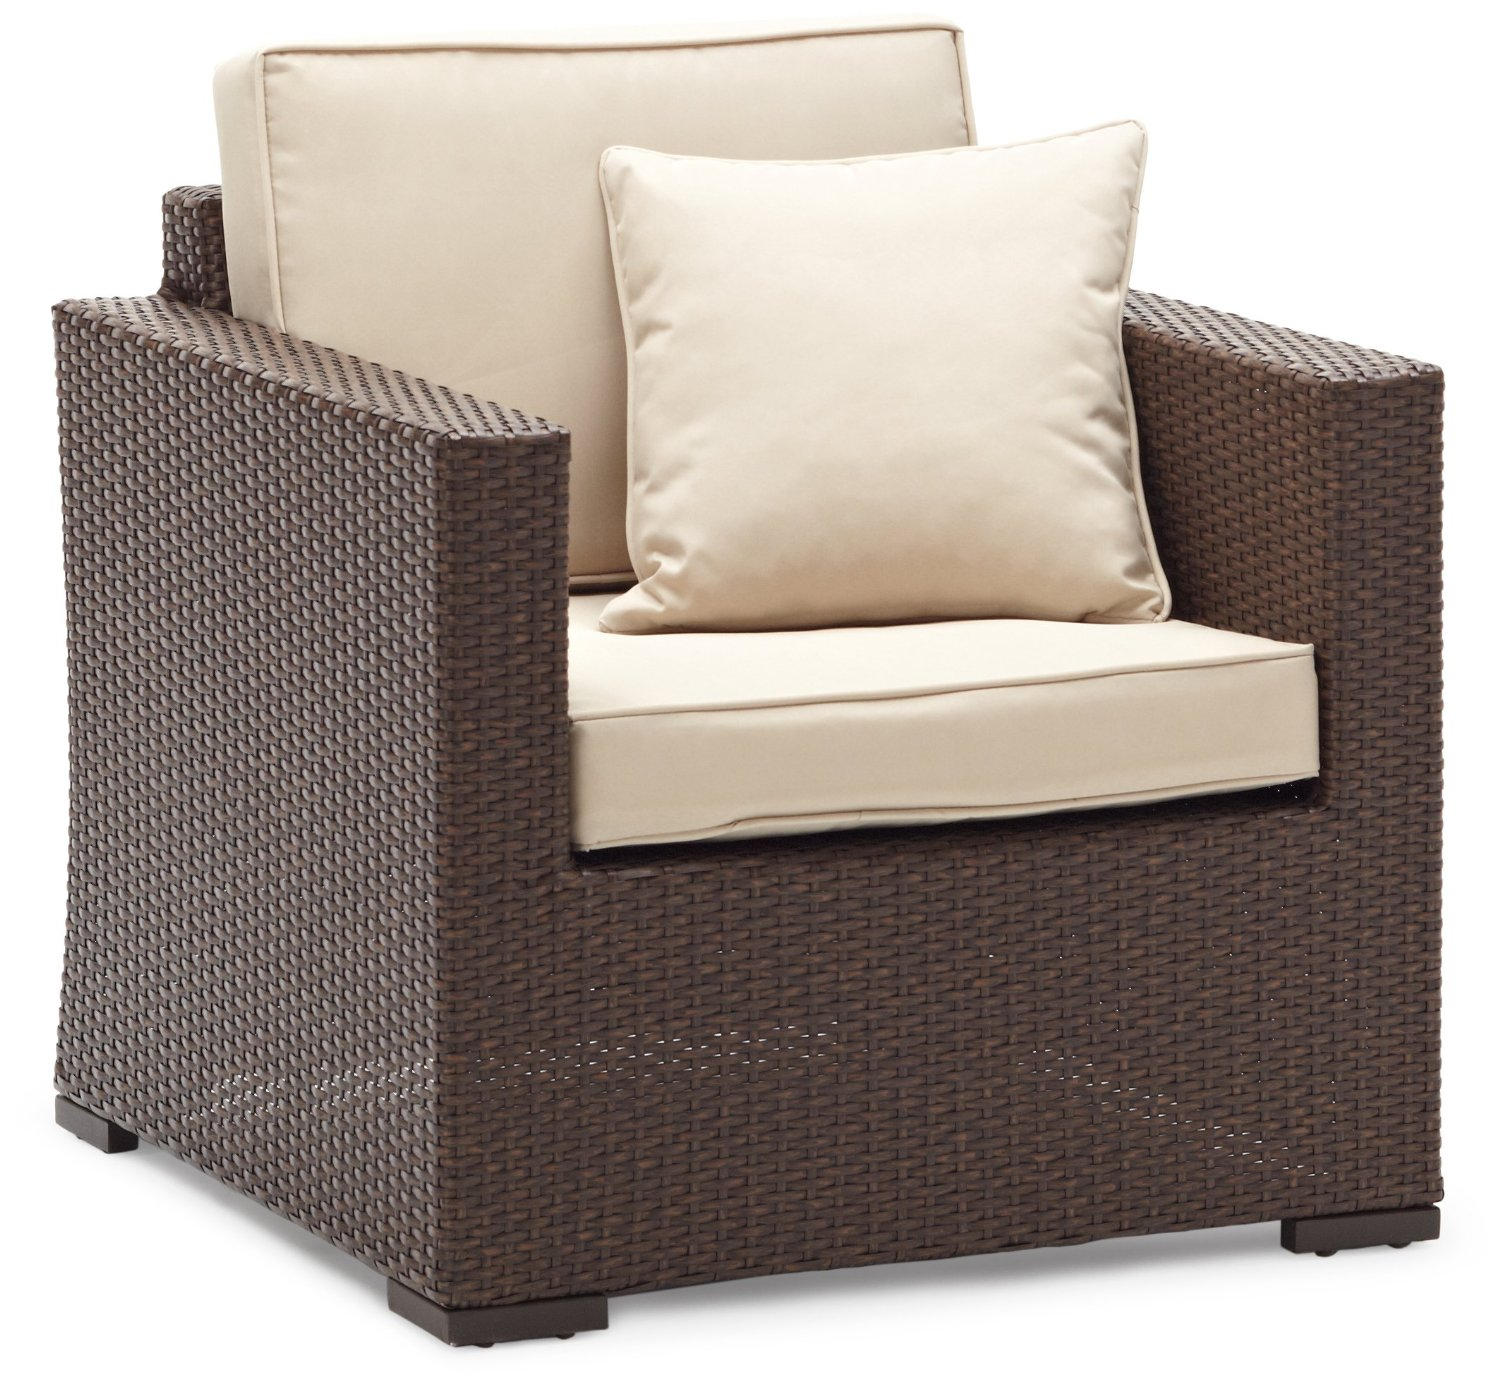 All Weather Wicker Chairs Strathwood Griffen Furniture All Weather Wicker Chair